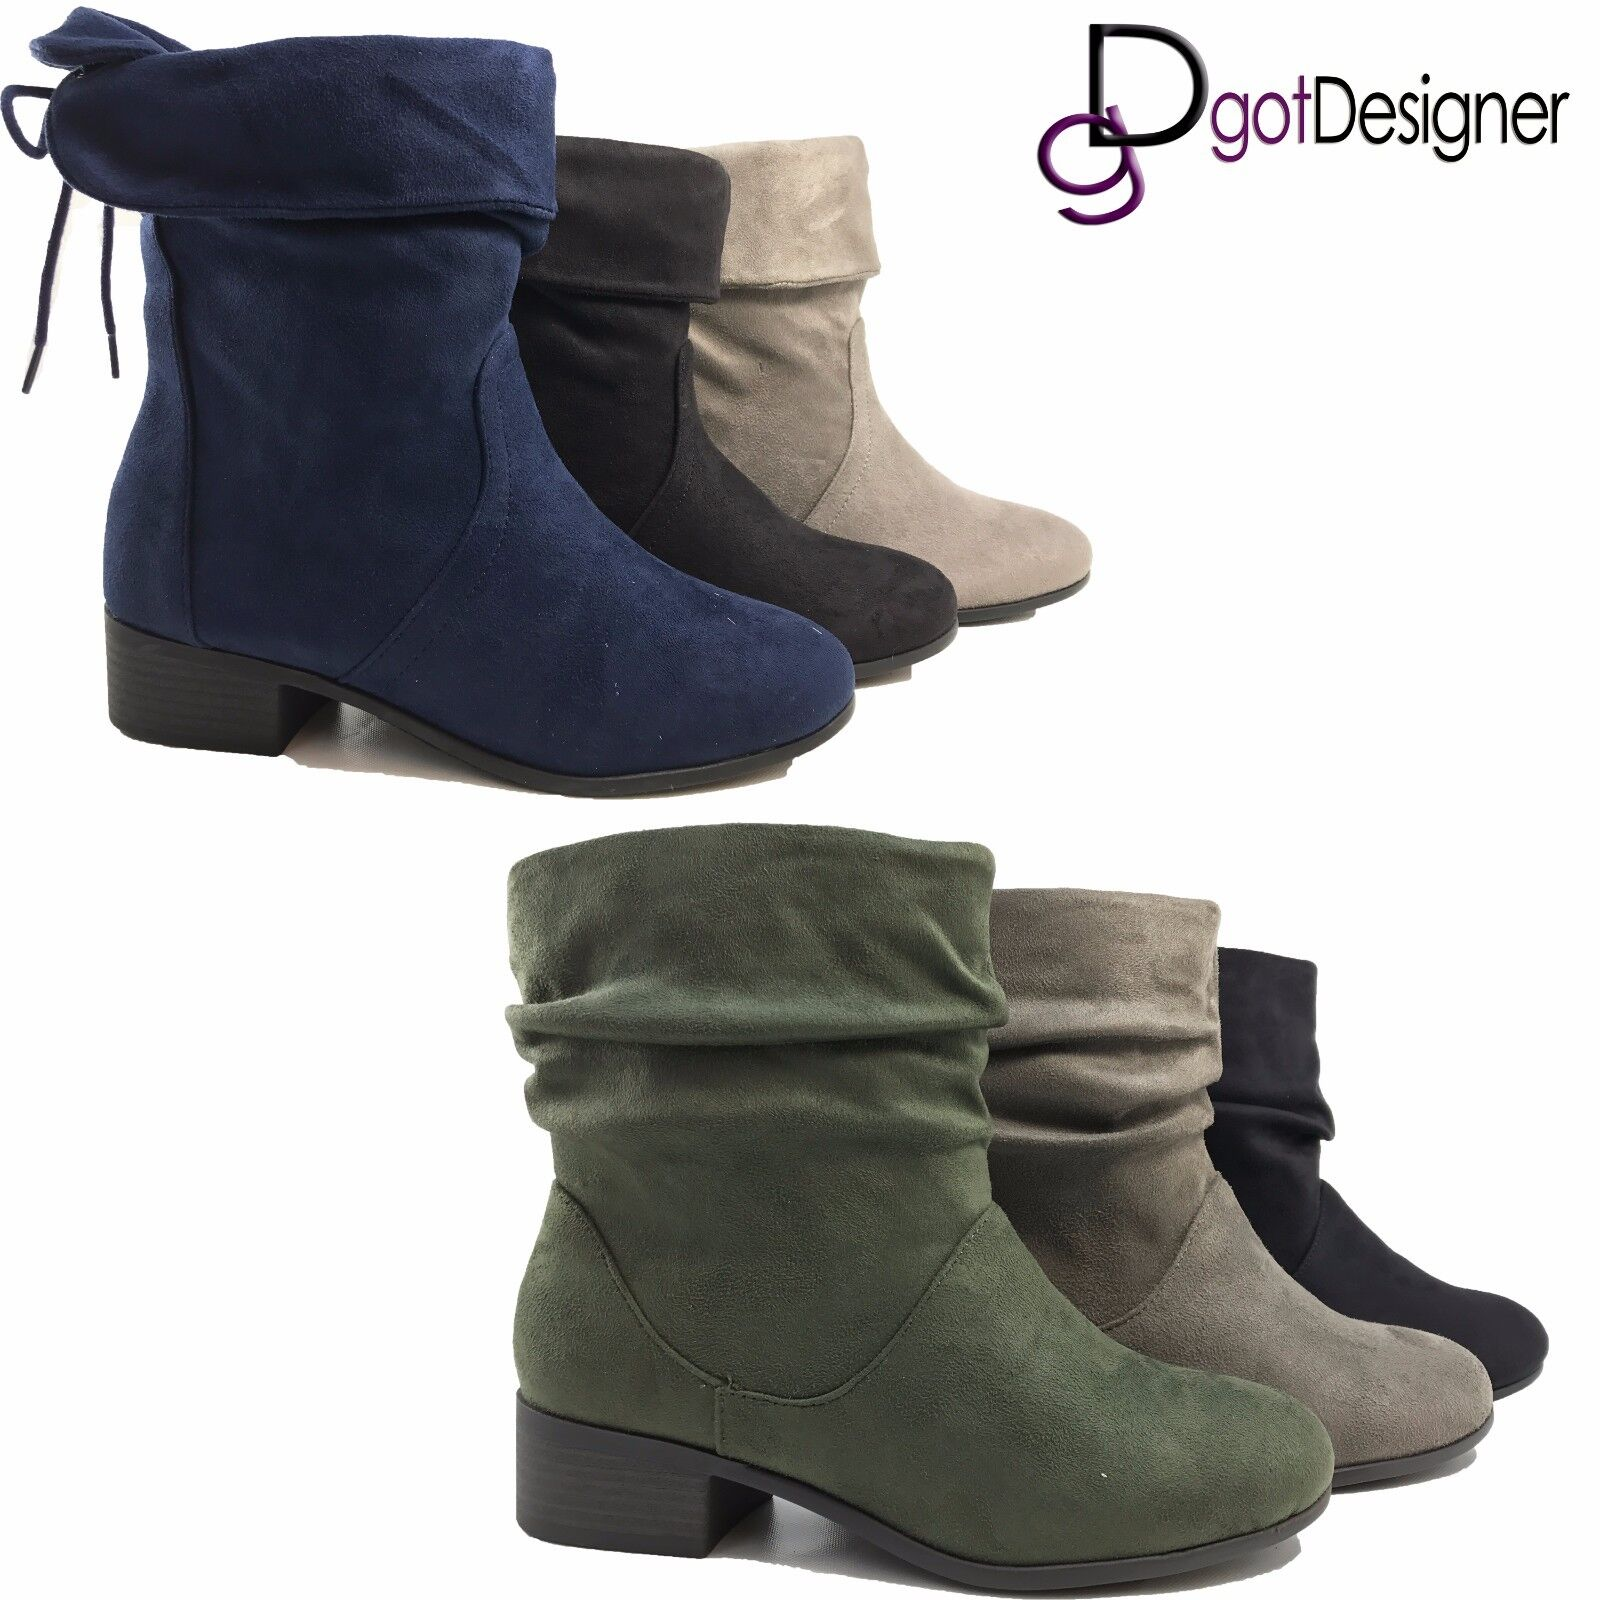 NEW Womens Short Slouch Ankle Boots Flat Heel Suede Booties BLK GRY Size 5-10